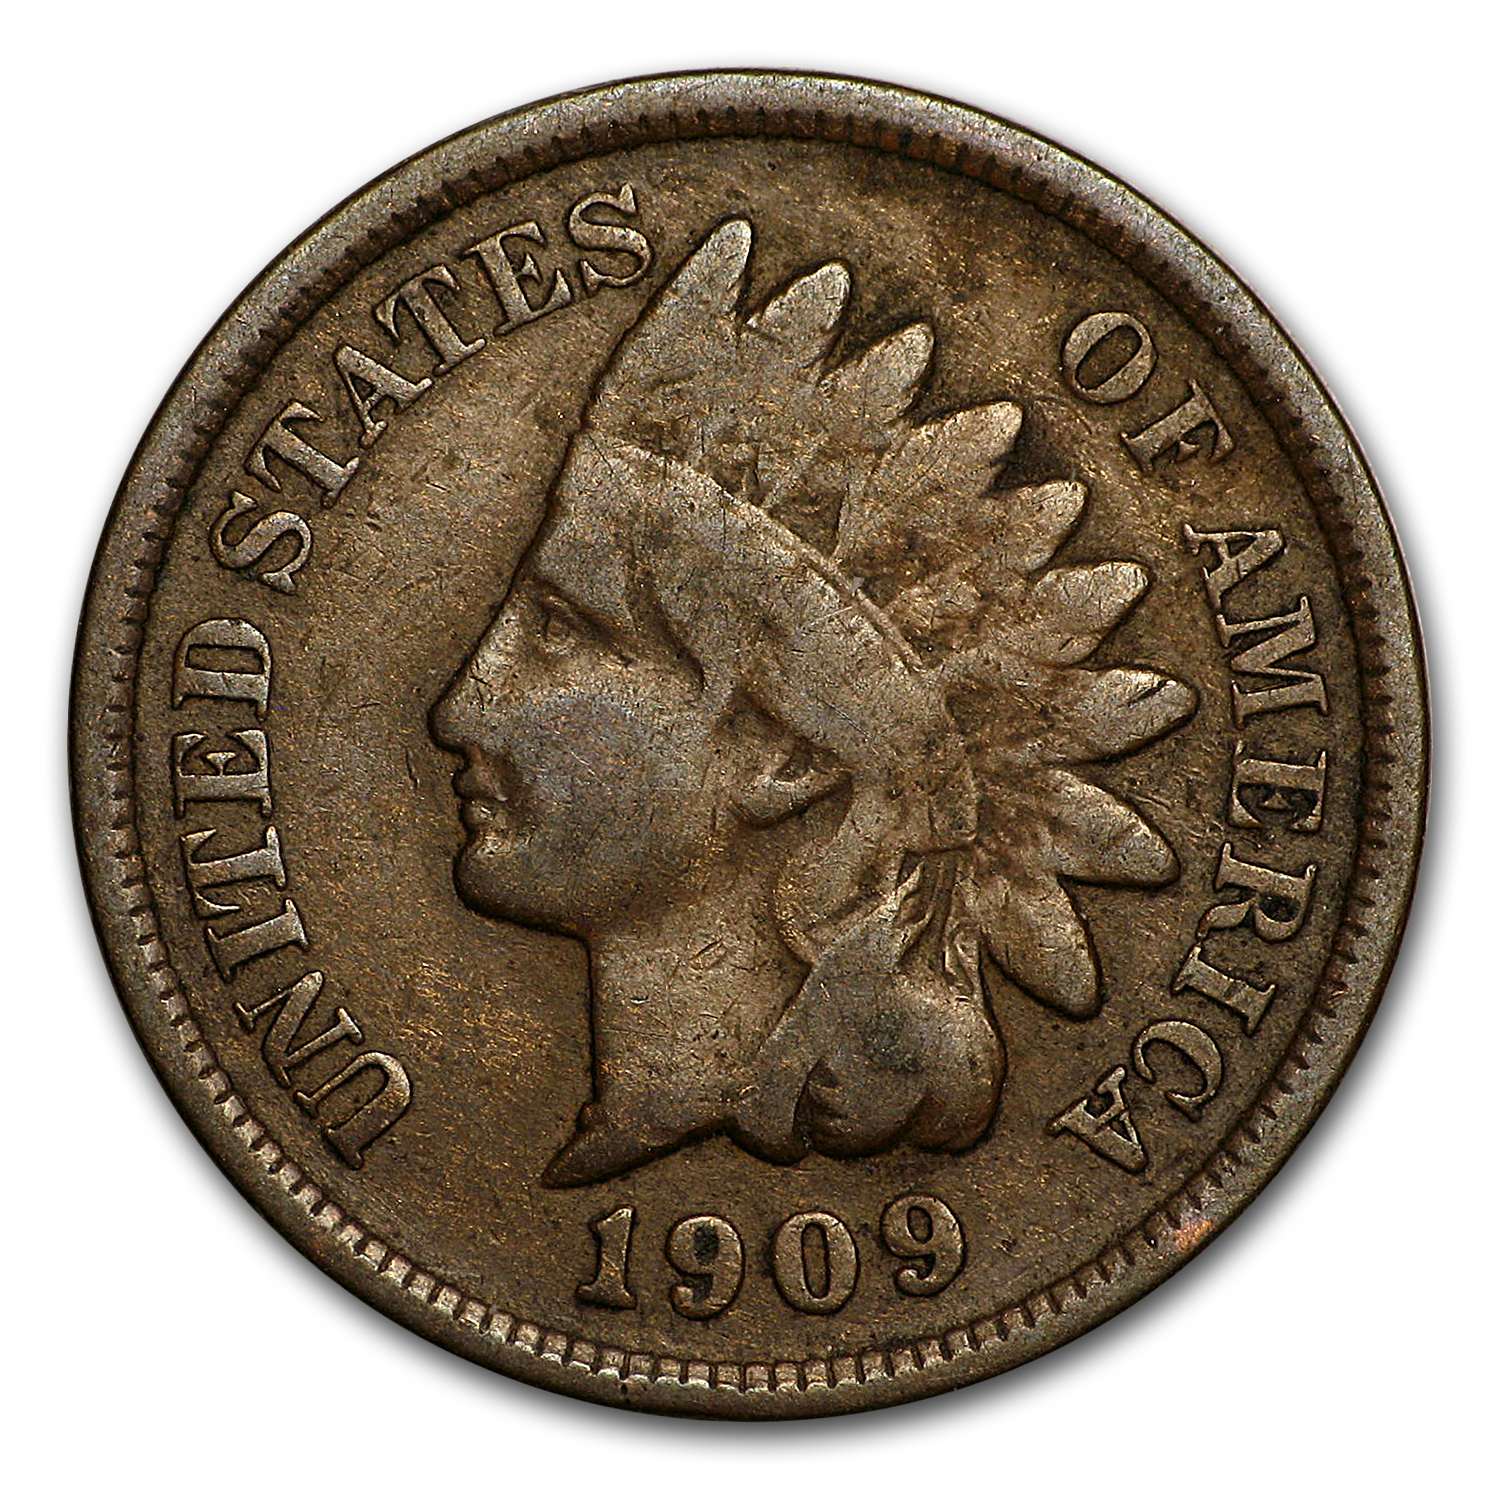 1909 Indian Head Cent Good/VG